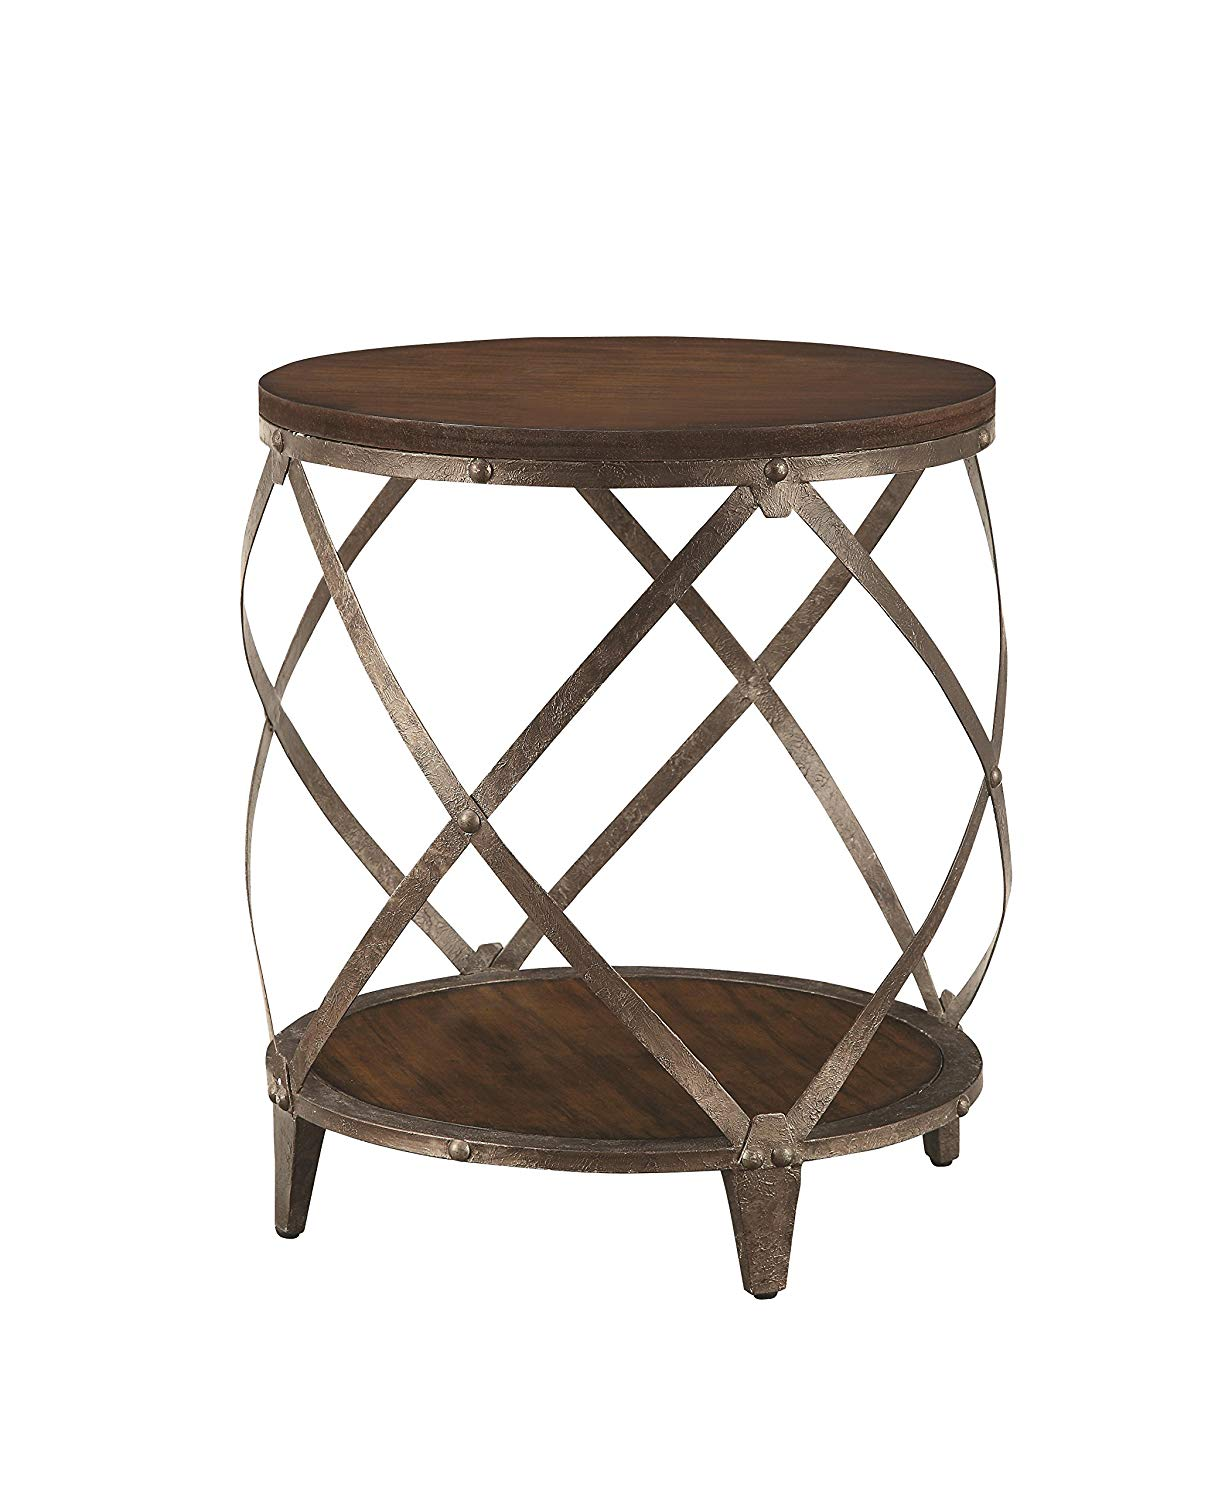 metal accent table with drum shape brown kitchen dining round fold expanding black and glass side meyda tiffany lamp bases marble coffee target bunnings chairs tables wrought iron